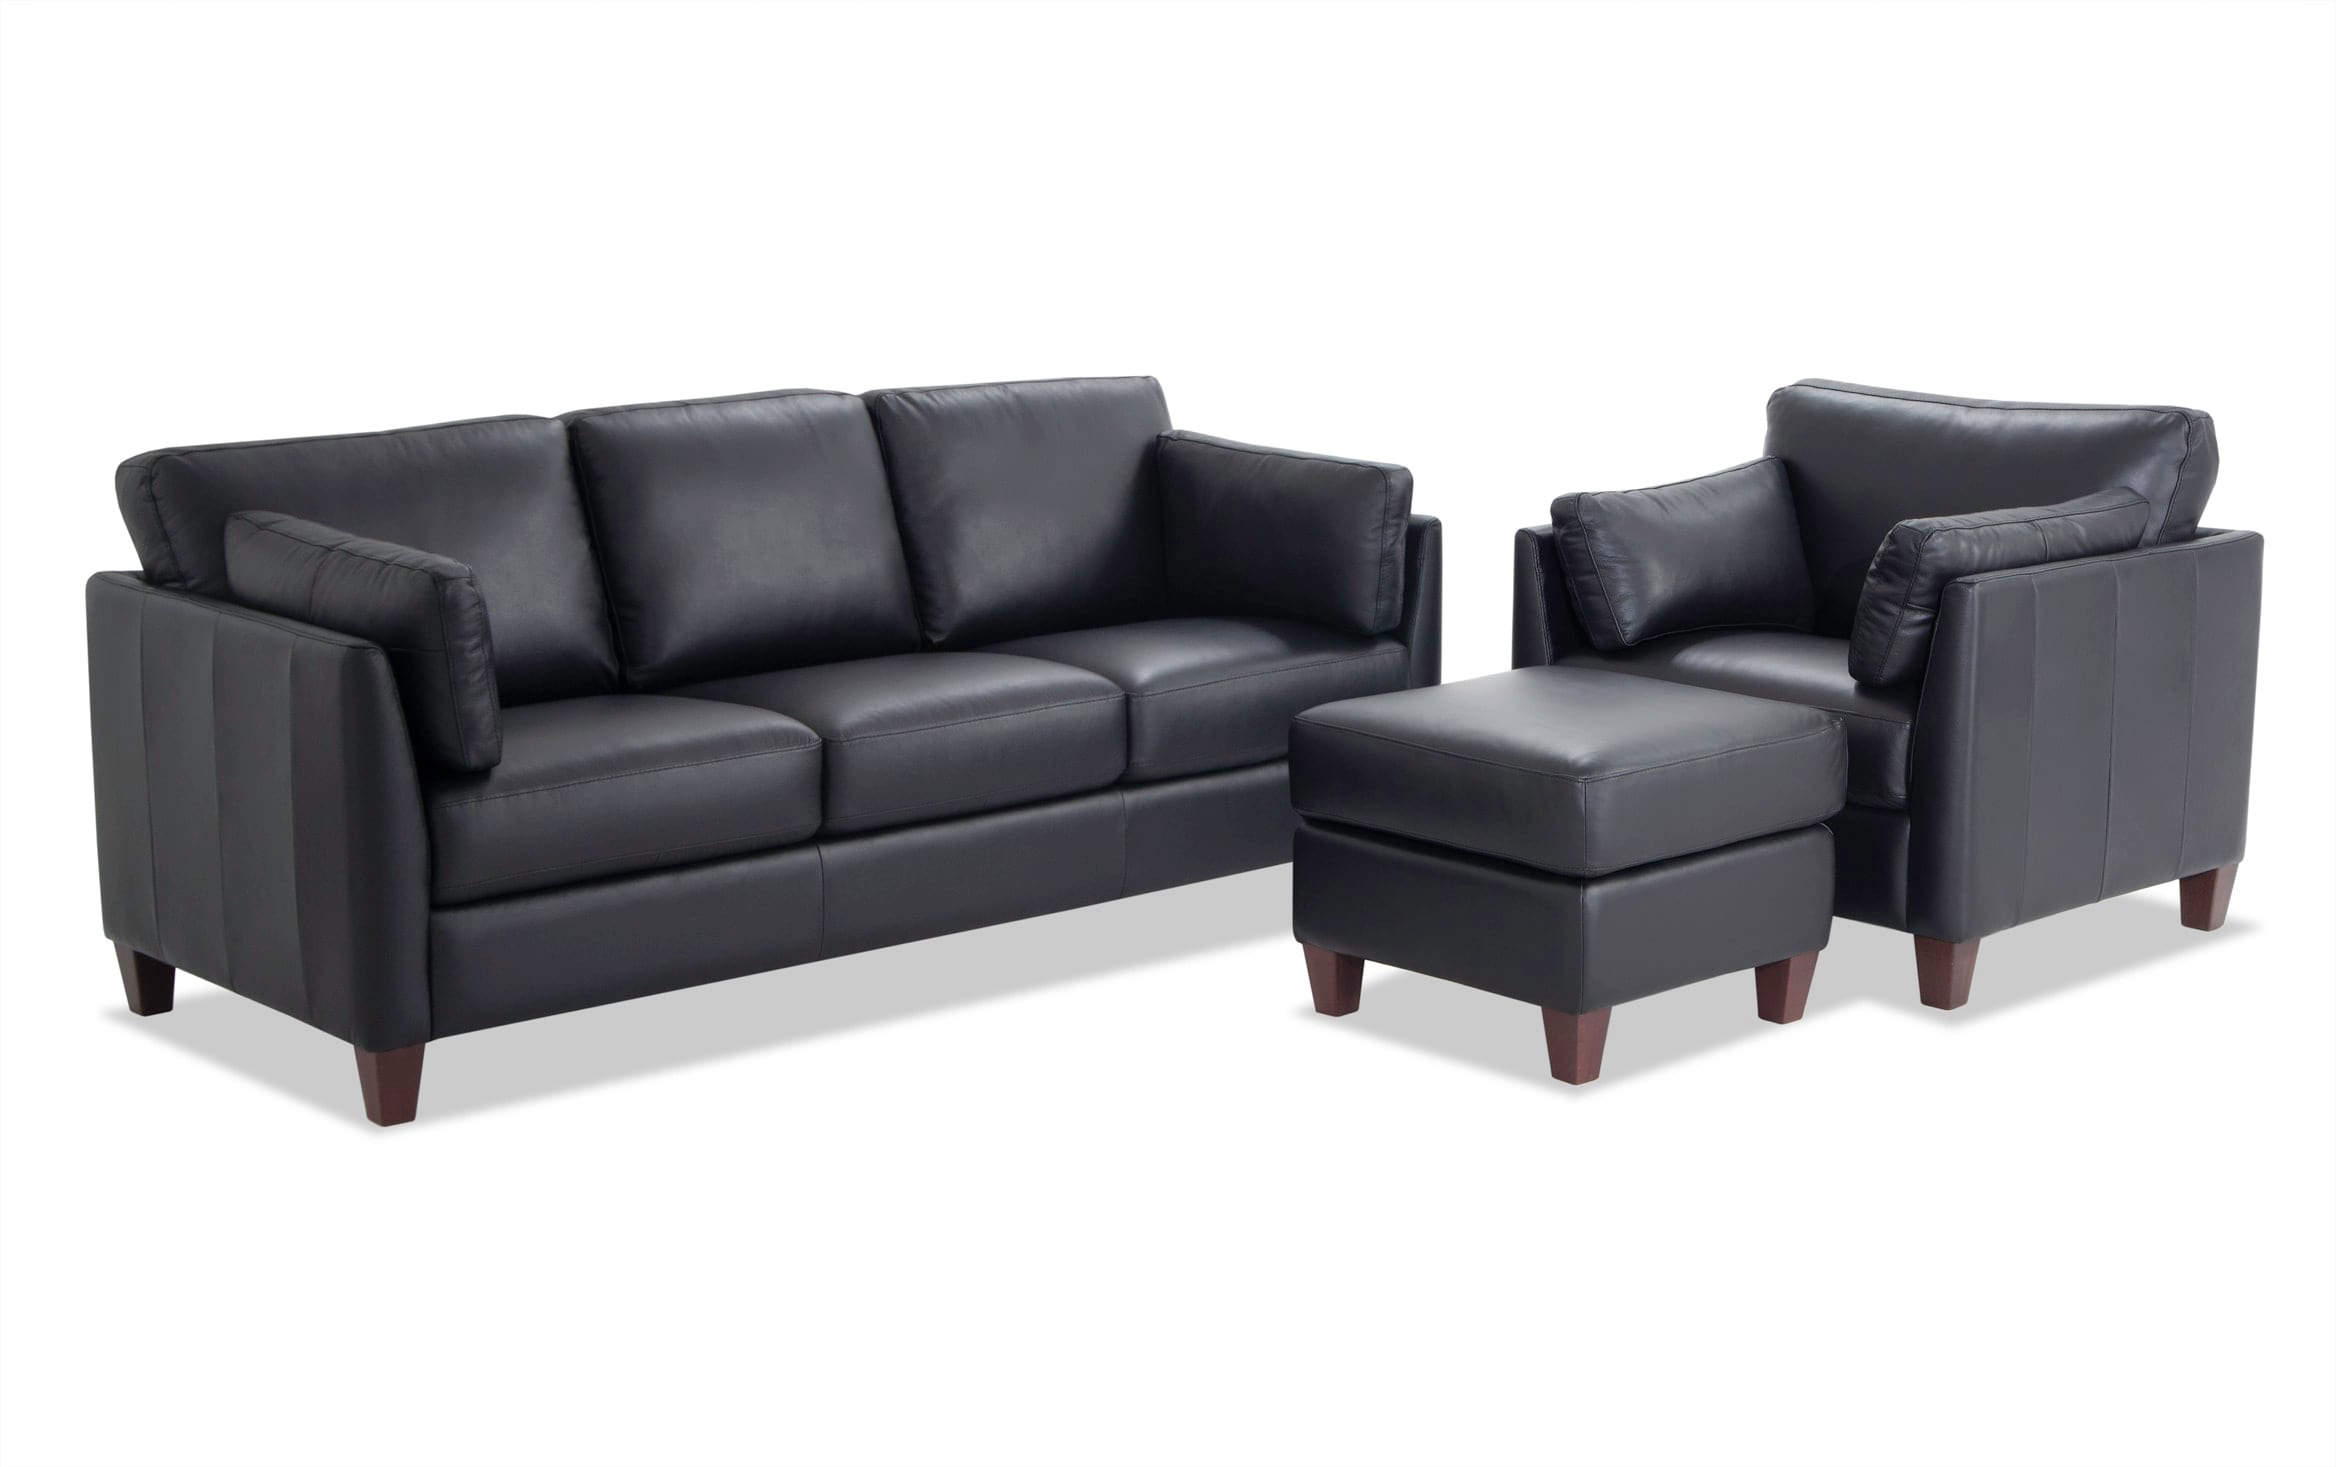 Antonio Black Leather Sofa Chair